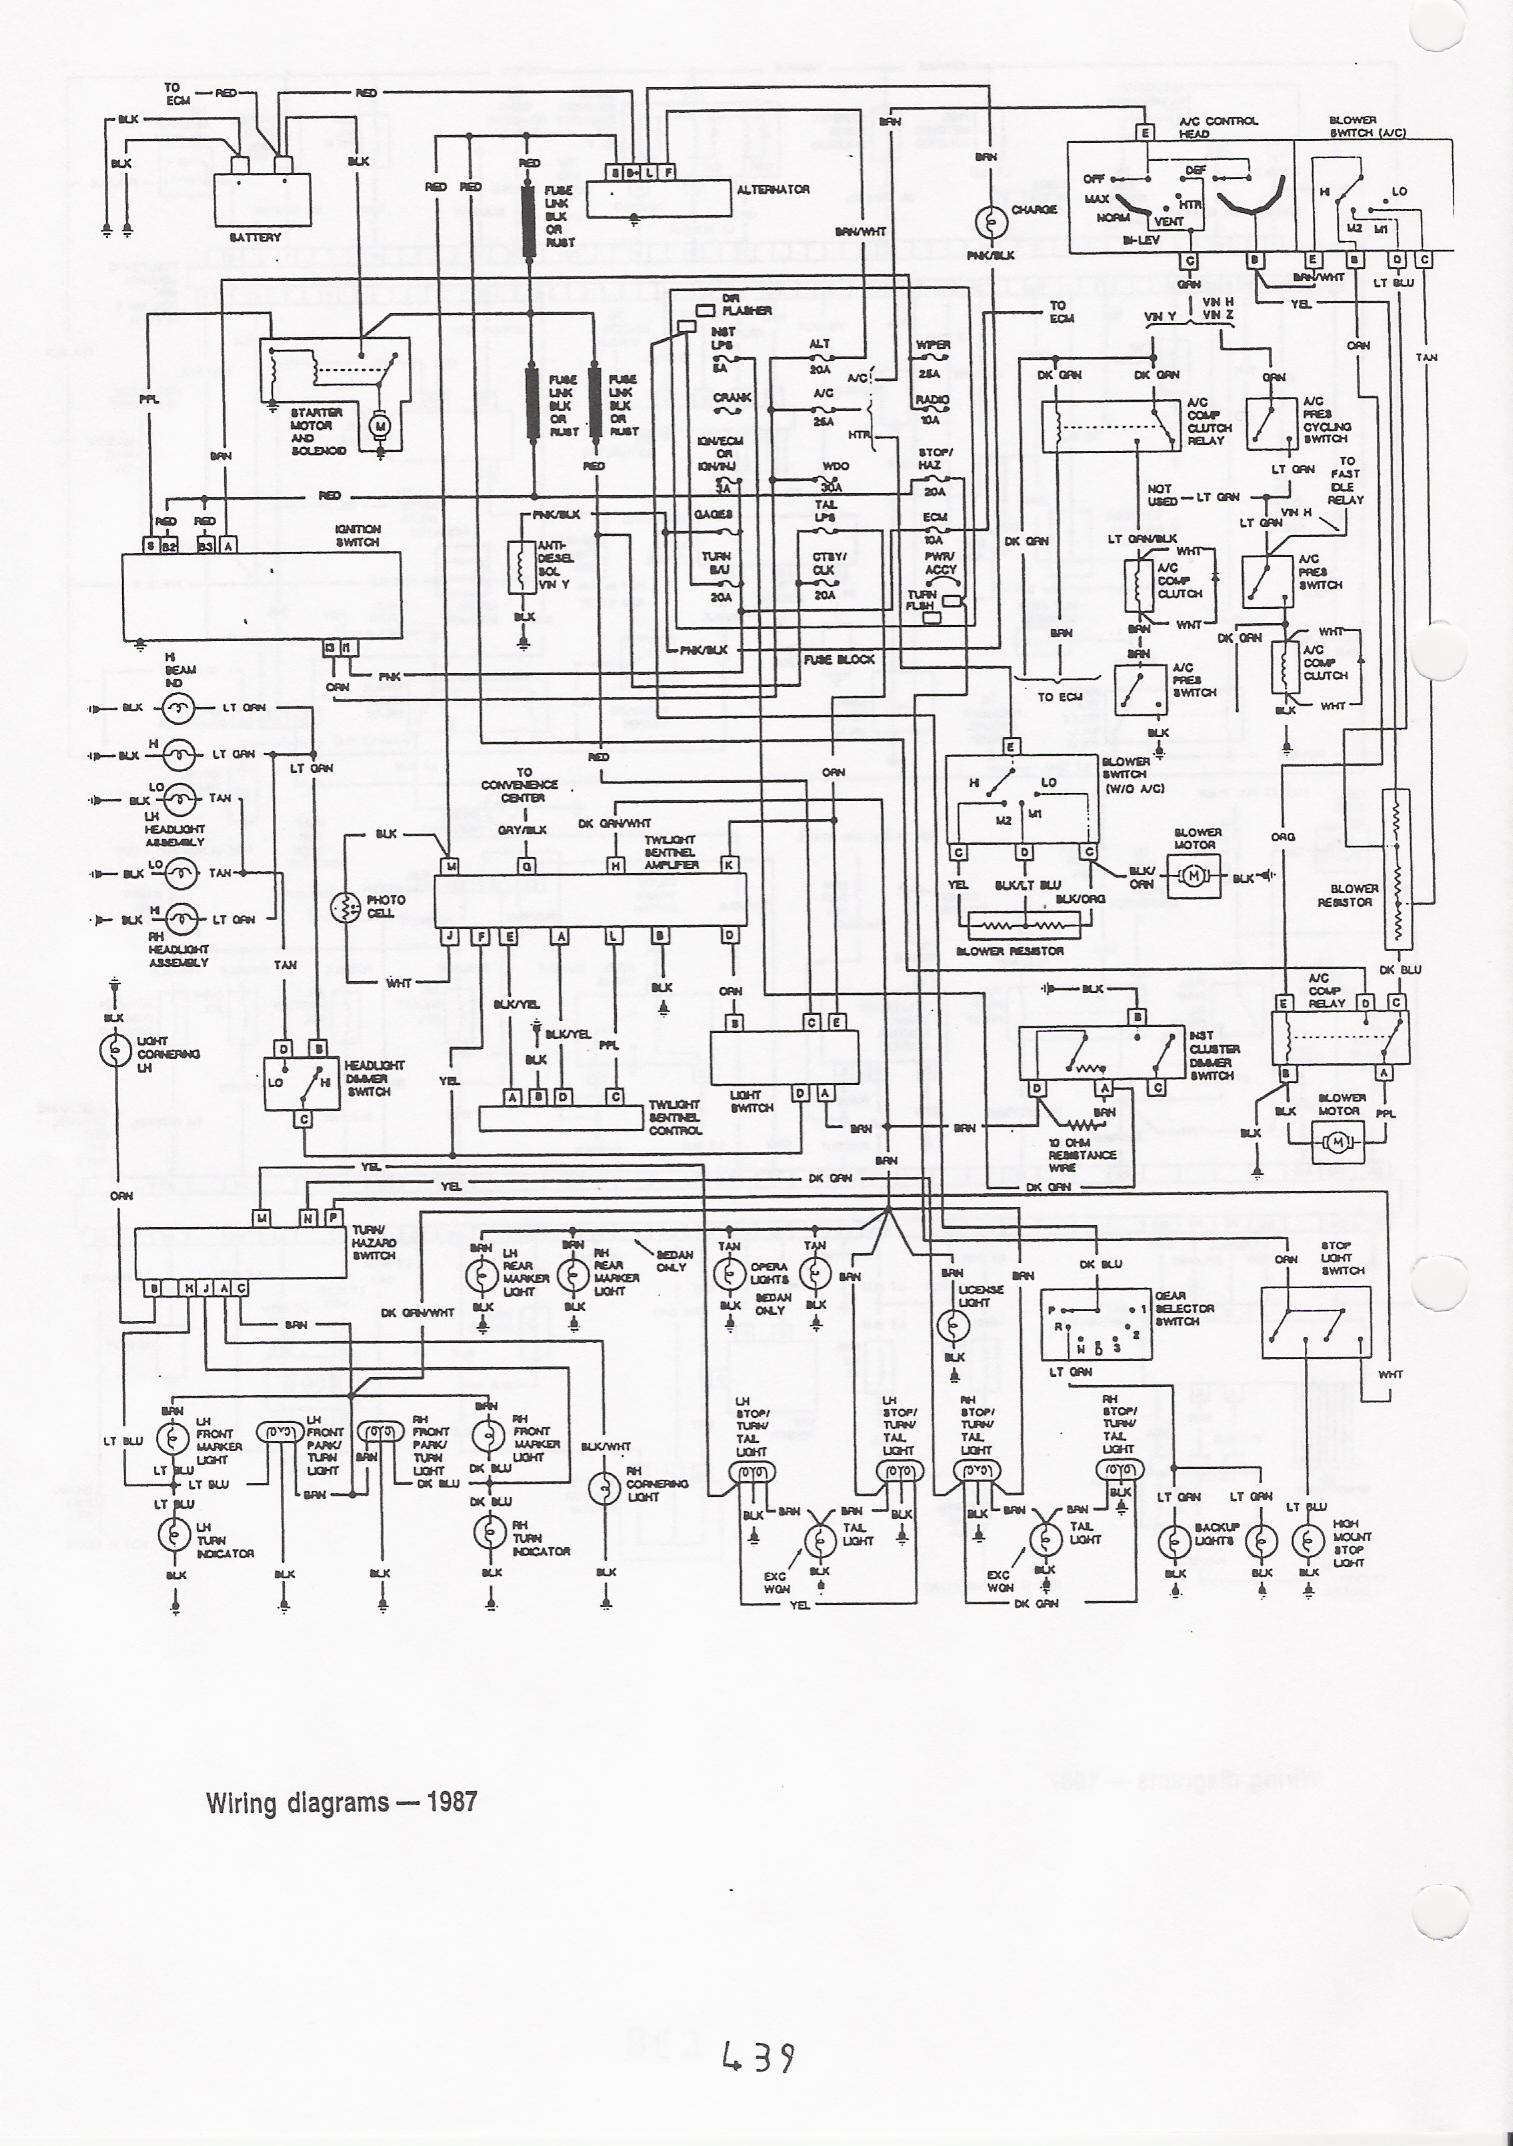 hight resolution of chevy nova wiring diagram chevy nova exhaust systems 1967 camaro wiring diagram 87 camaro alternator wiring